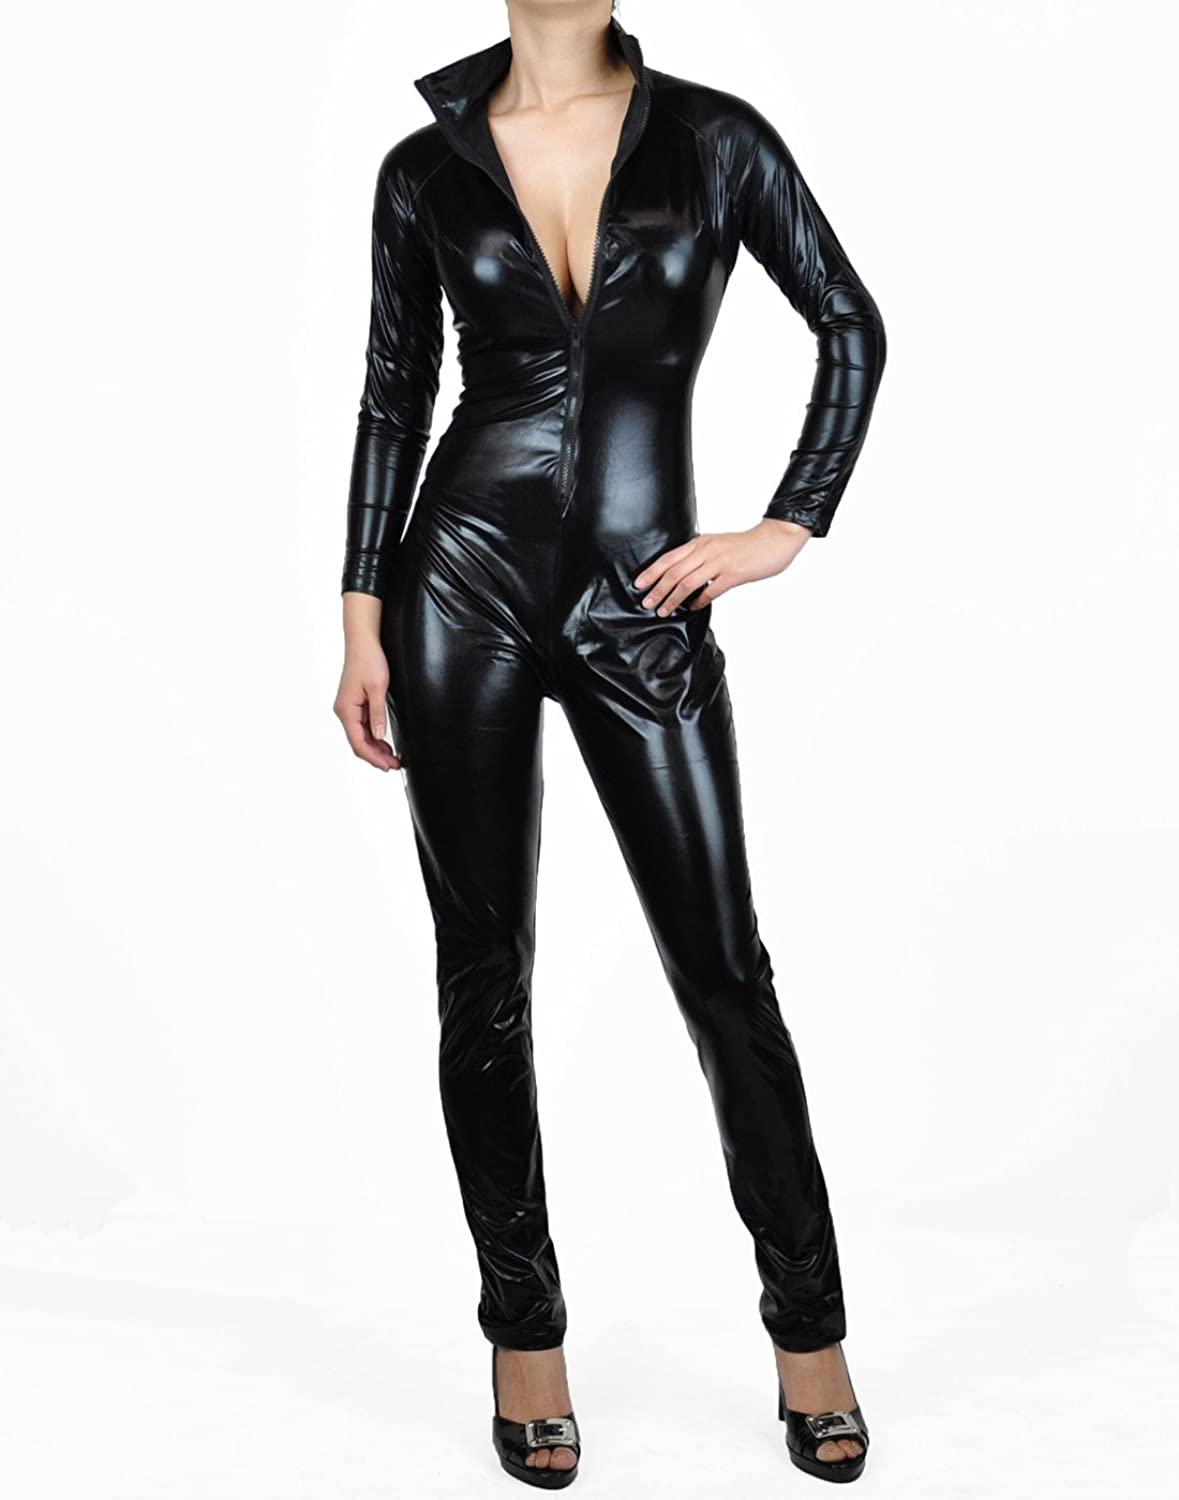 Black Metallic Wet Look Full Bodysuit Costume-Reg and Plus Size